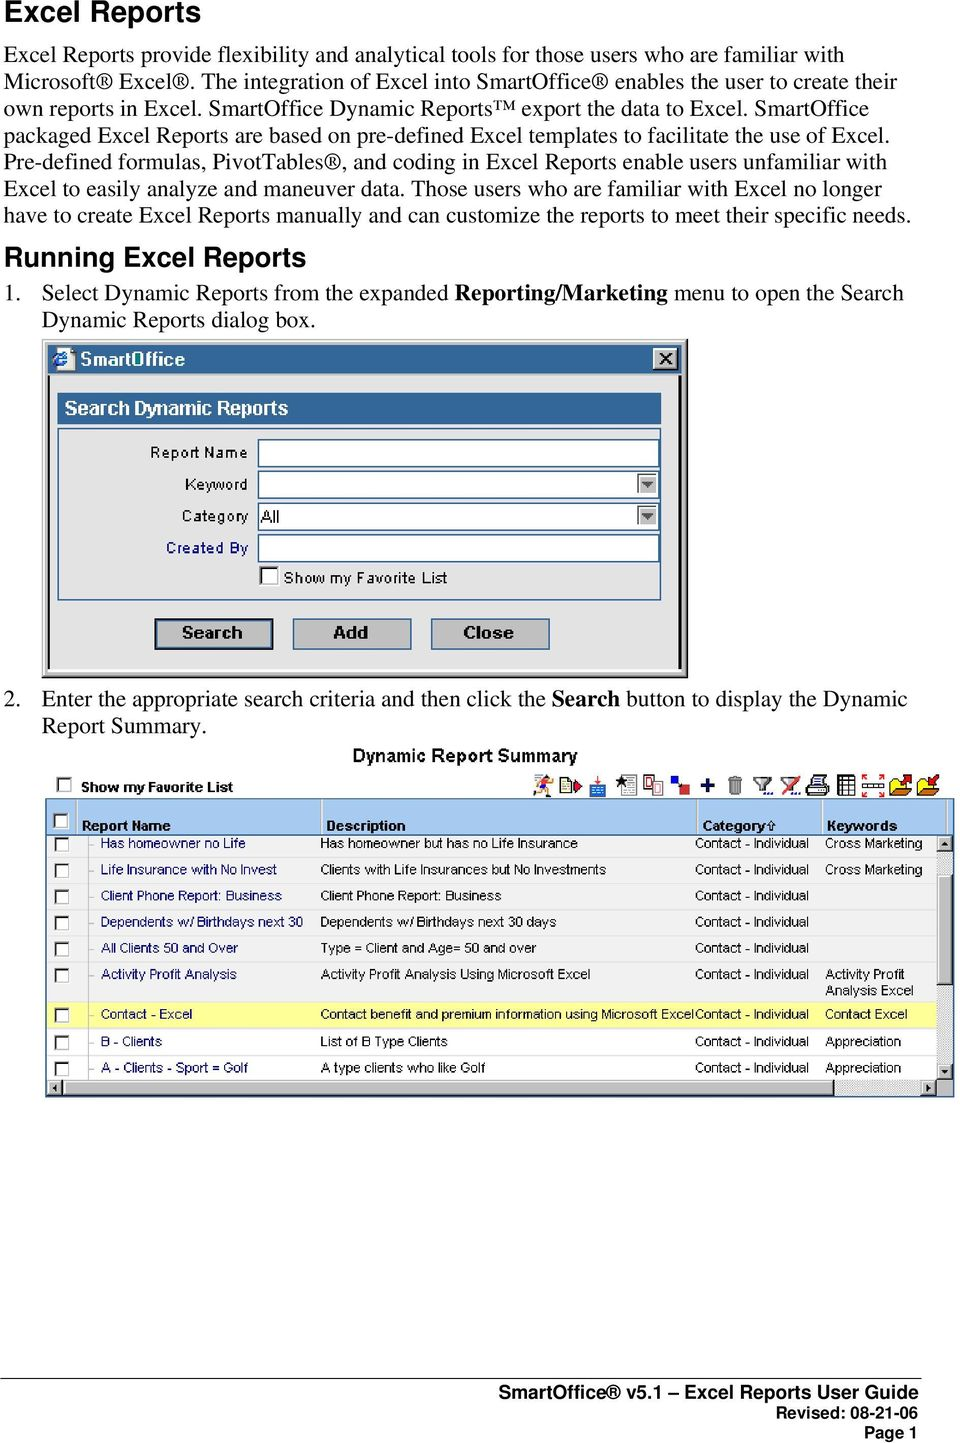 SmartOffice packaged Excel Reports are based on pre-defined Excel templates to facilitate the use of Excel.